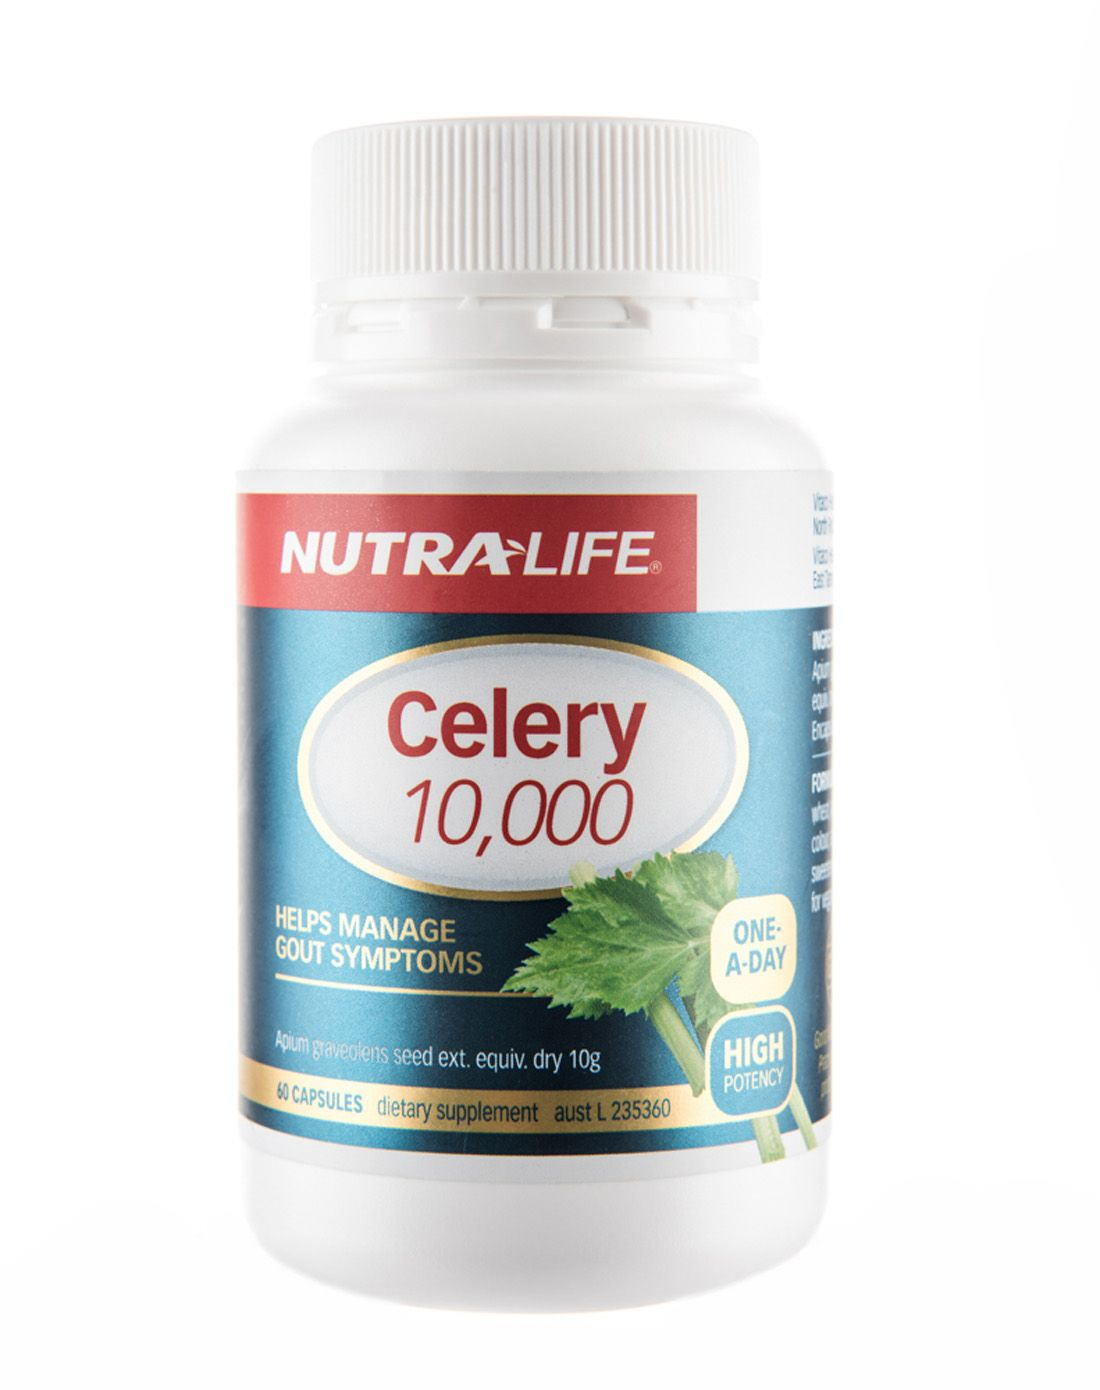 Nutralife Celery 10,000 One a Day